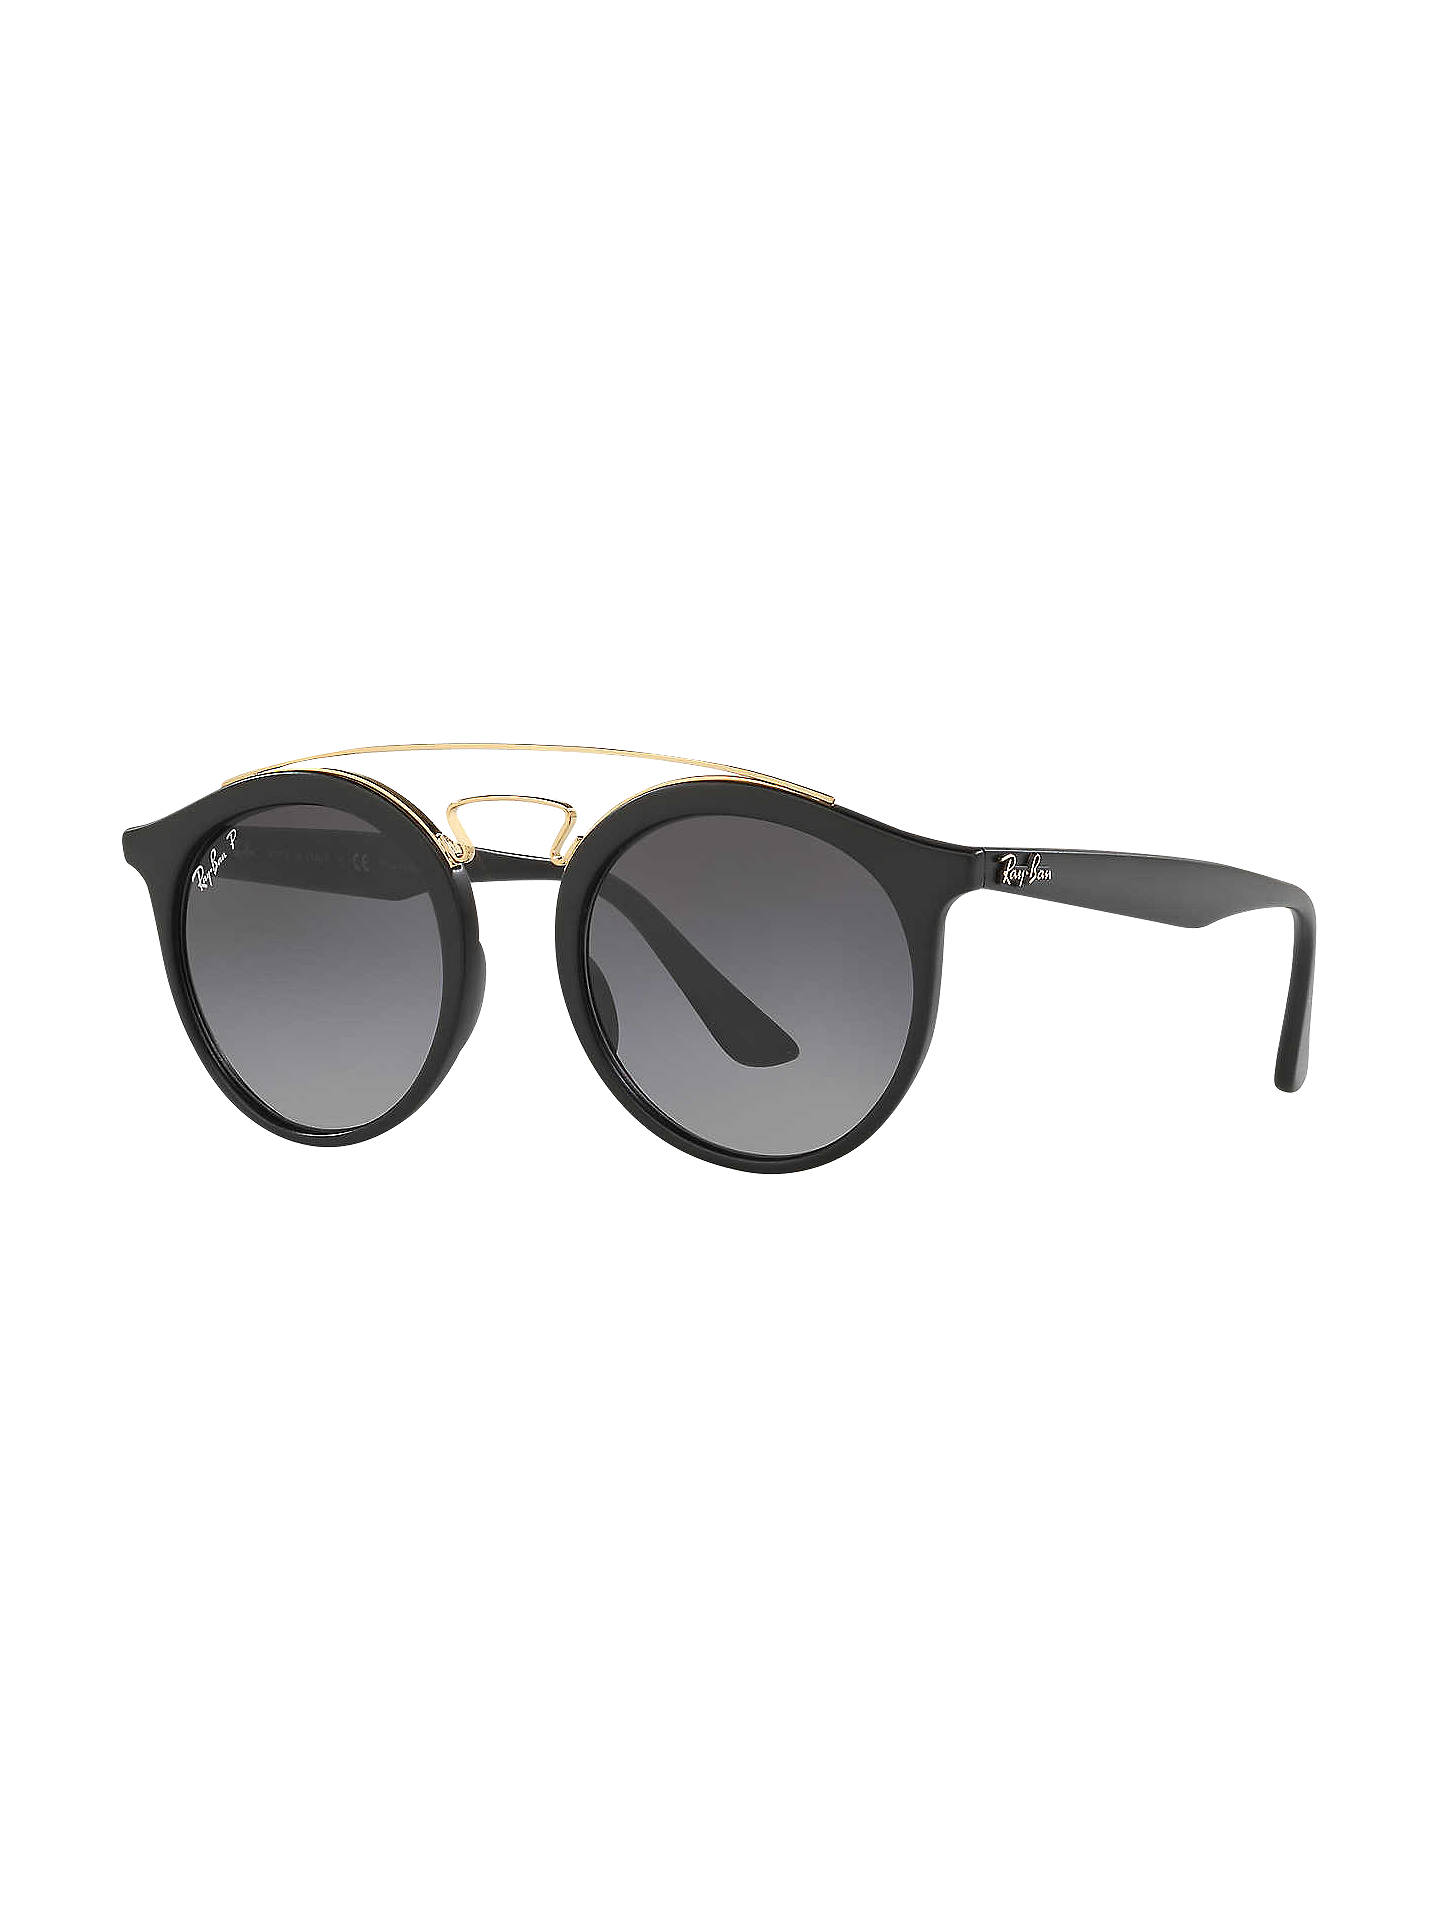 095ef12089 Buy Ray-Ban RB4256 Polarised Round Sunglasses, Black/Grey Gradient Online  at johnlewis ...